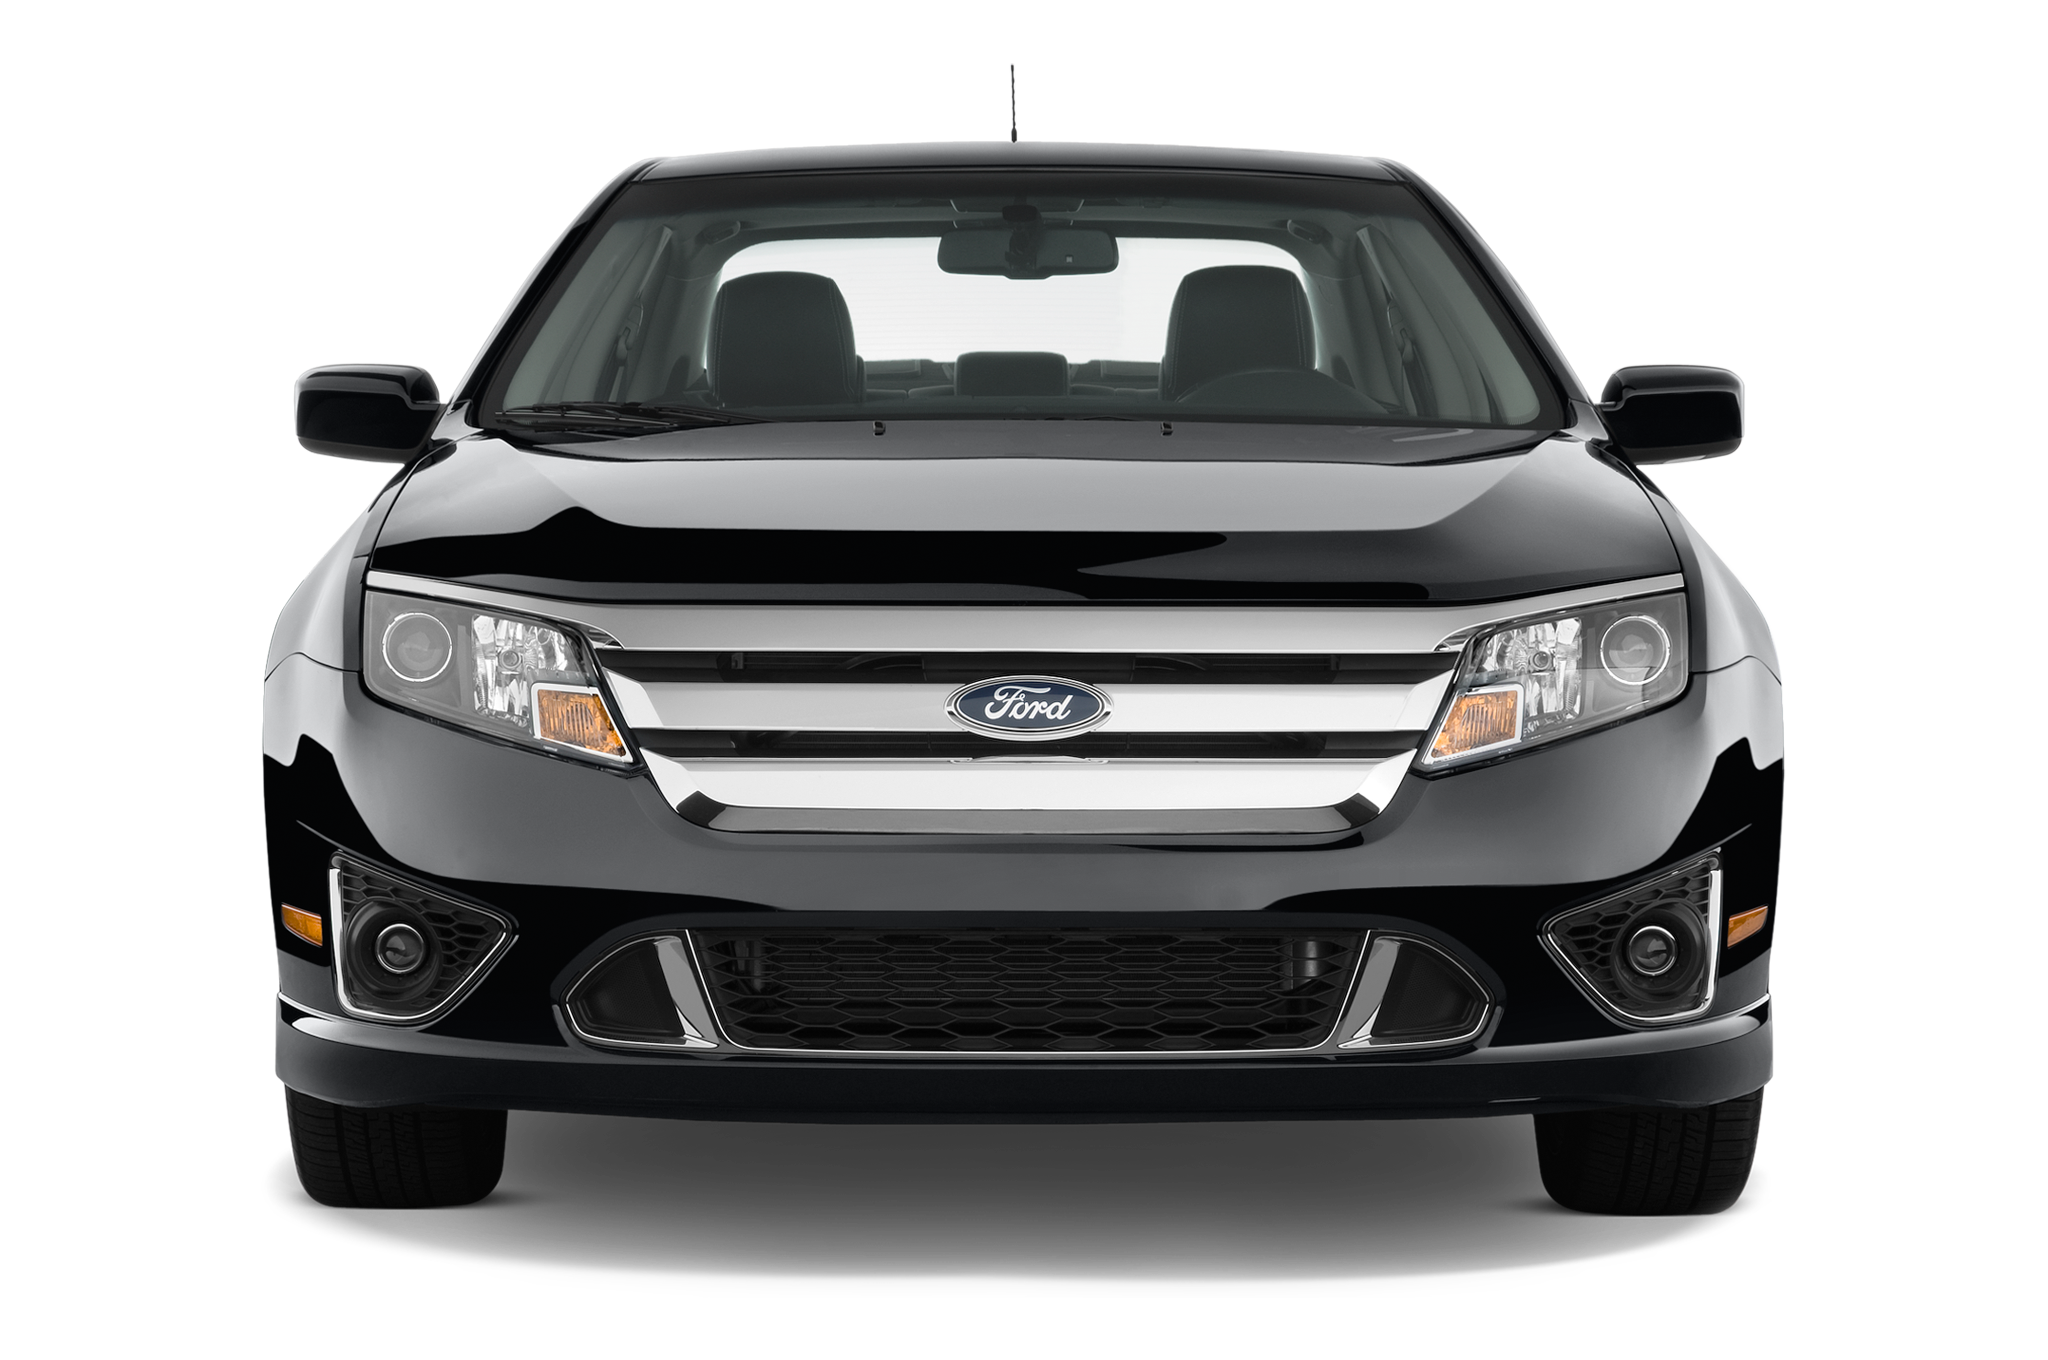 2010 ford fusion hybrid ford midsize hybrid sedan review. Black Bedroom Furniture Sets. Home Design Ideas